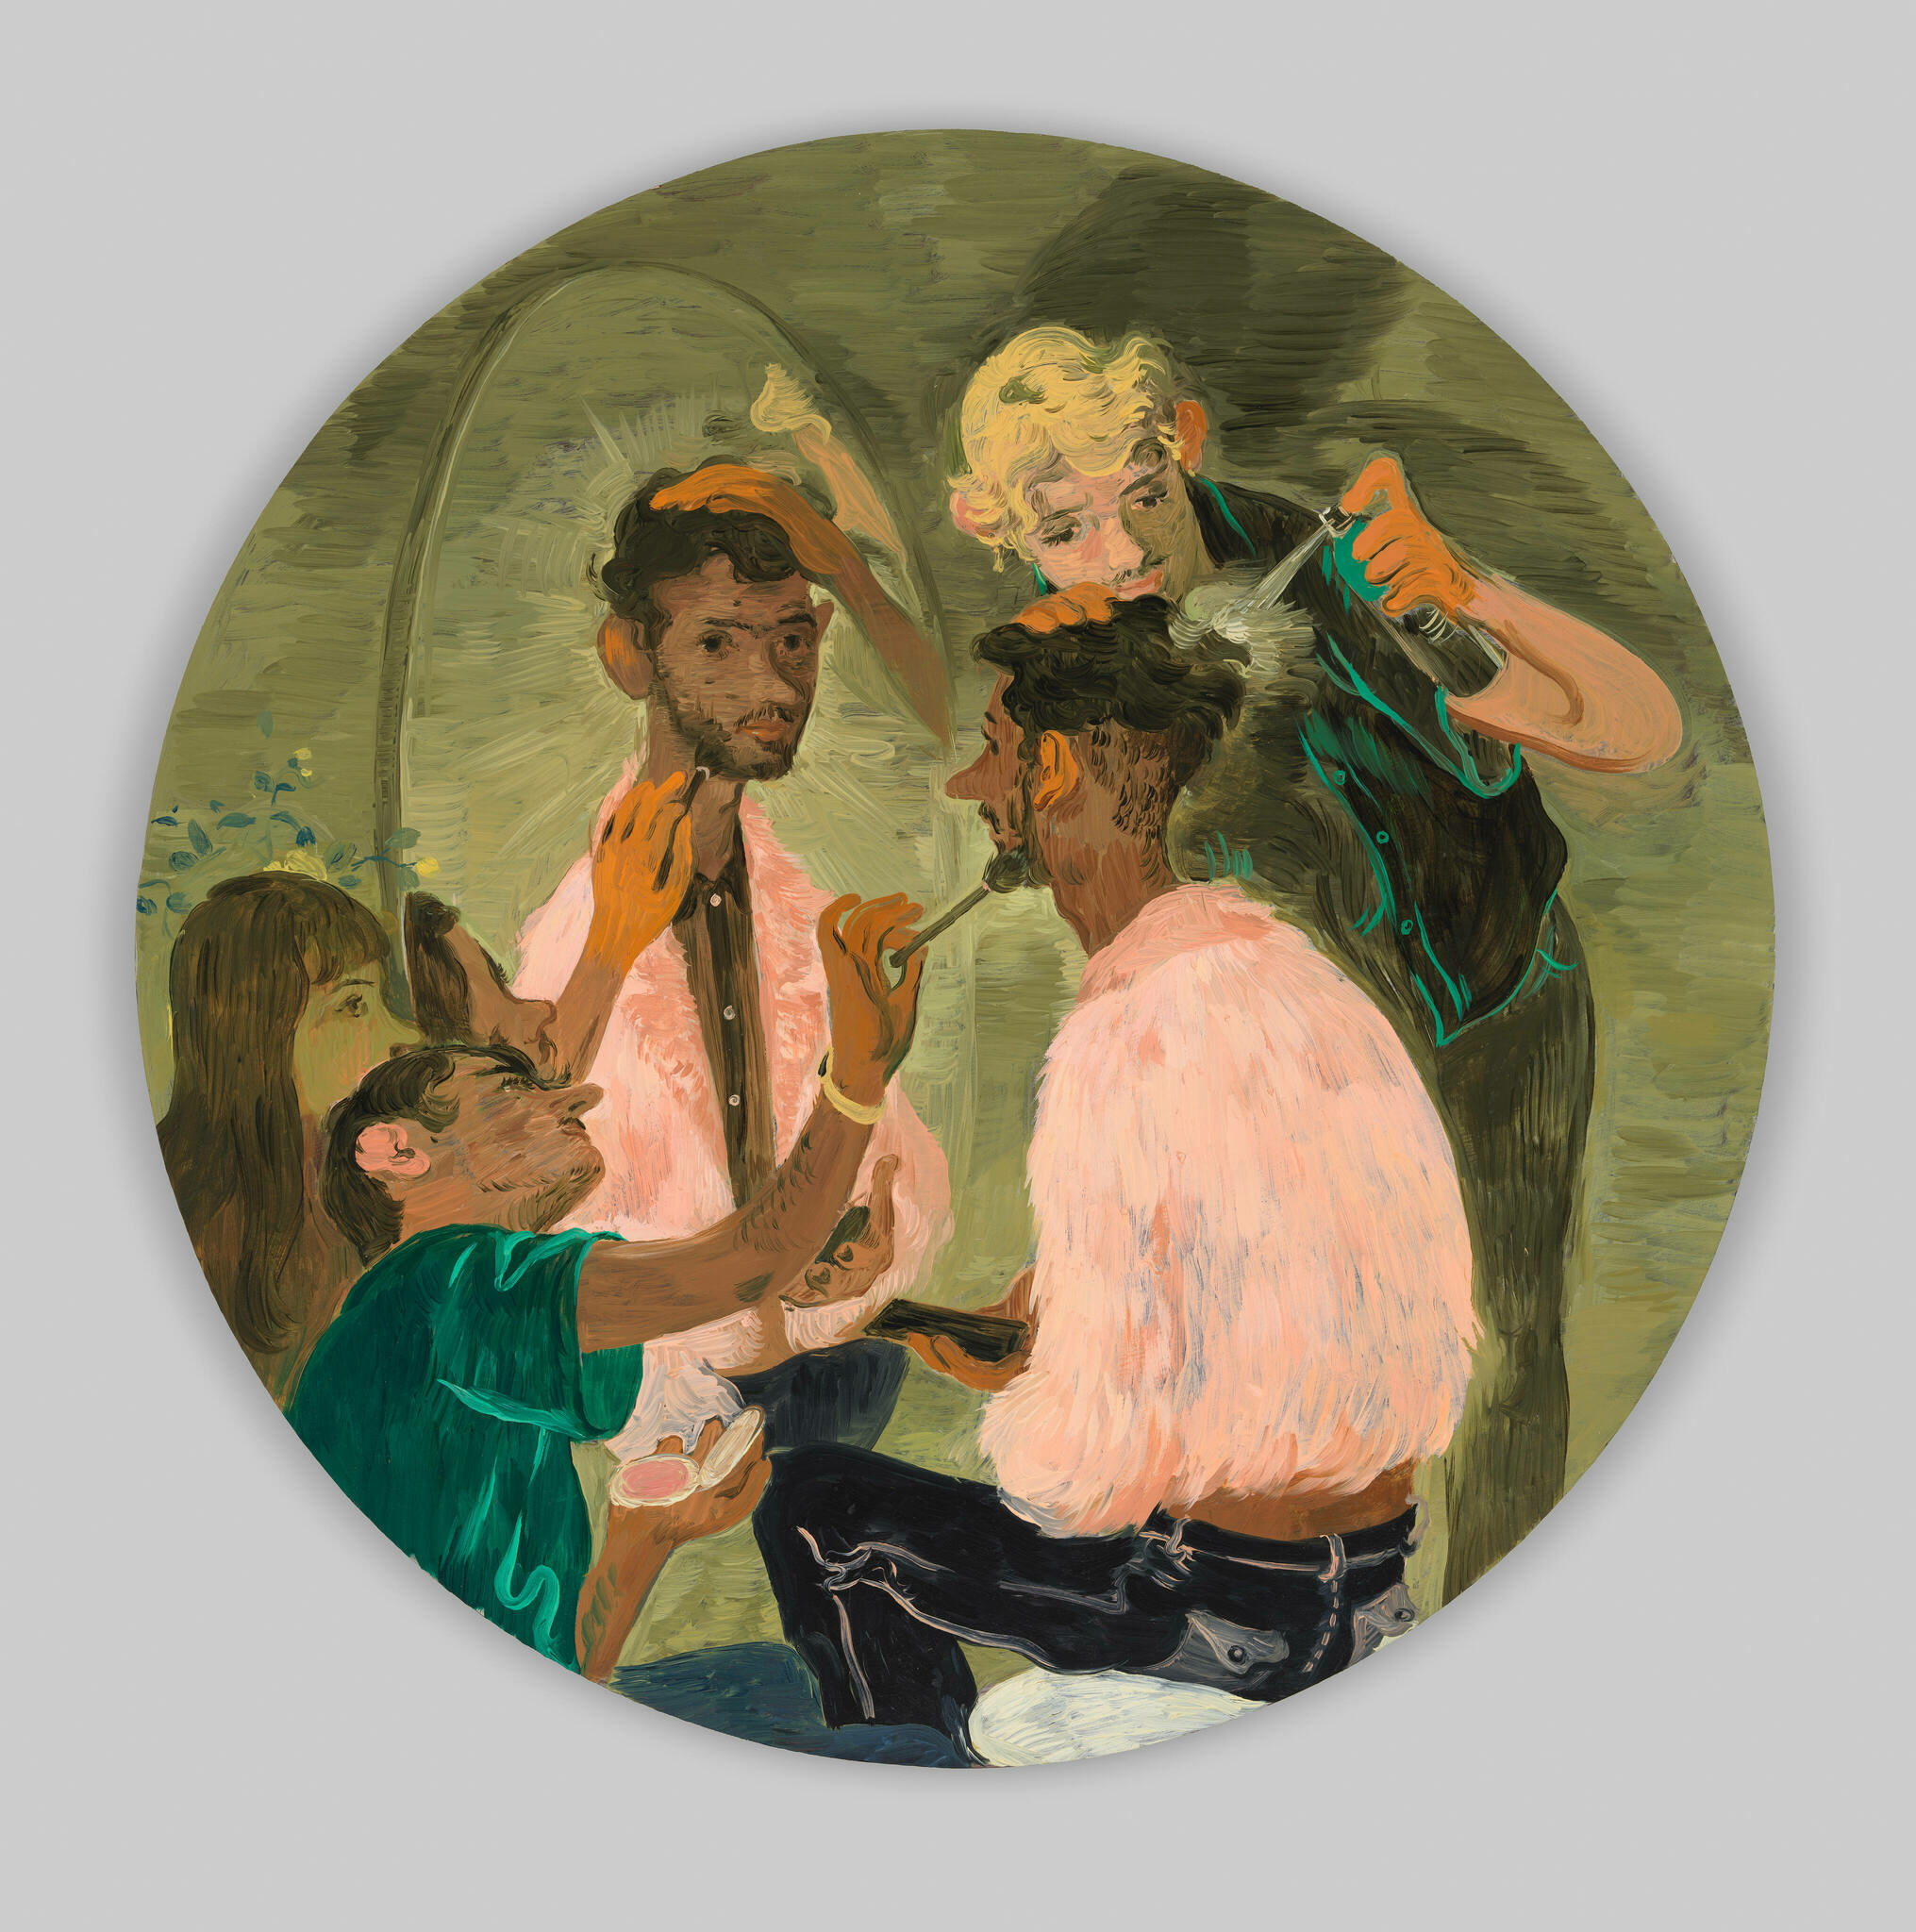 Boyish, short-haired figures gather around a central figure seated and at a mirror. They groom the central figure with hair spray and make-up brushes.